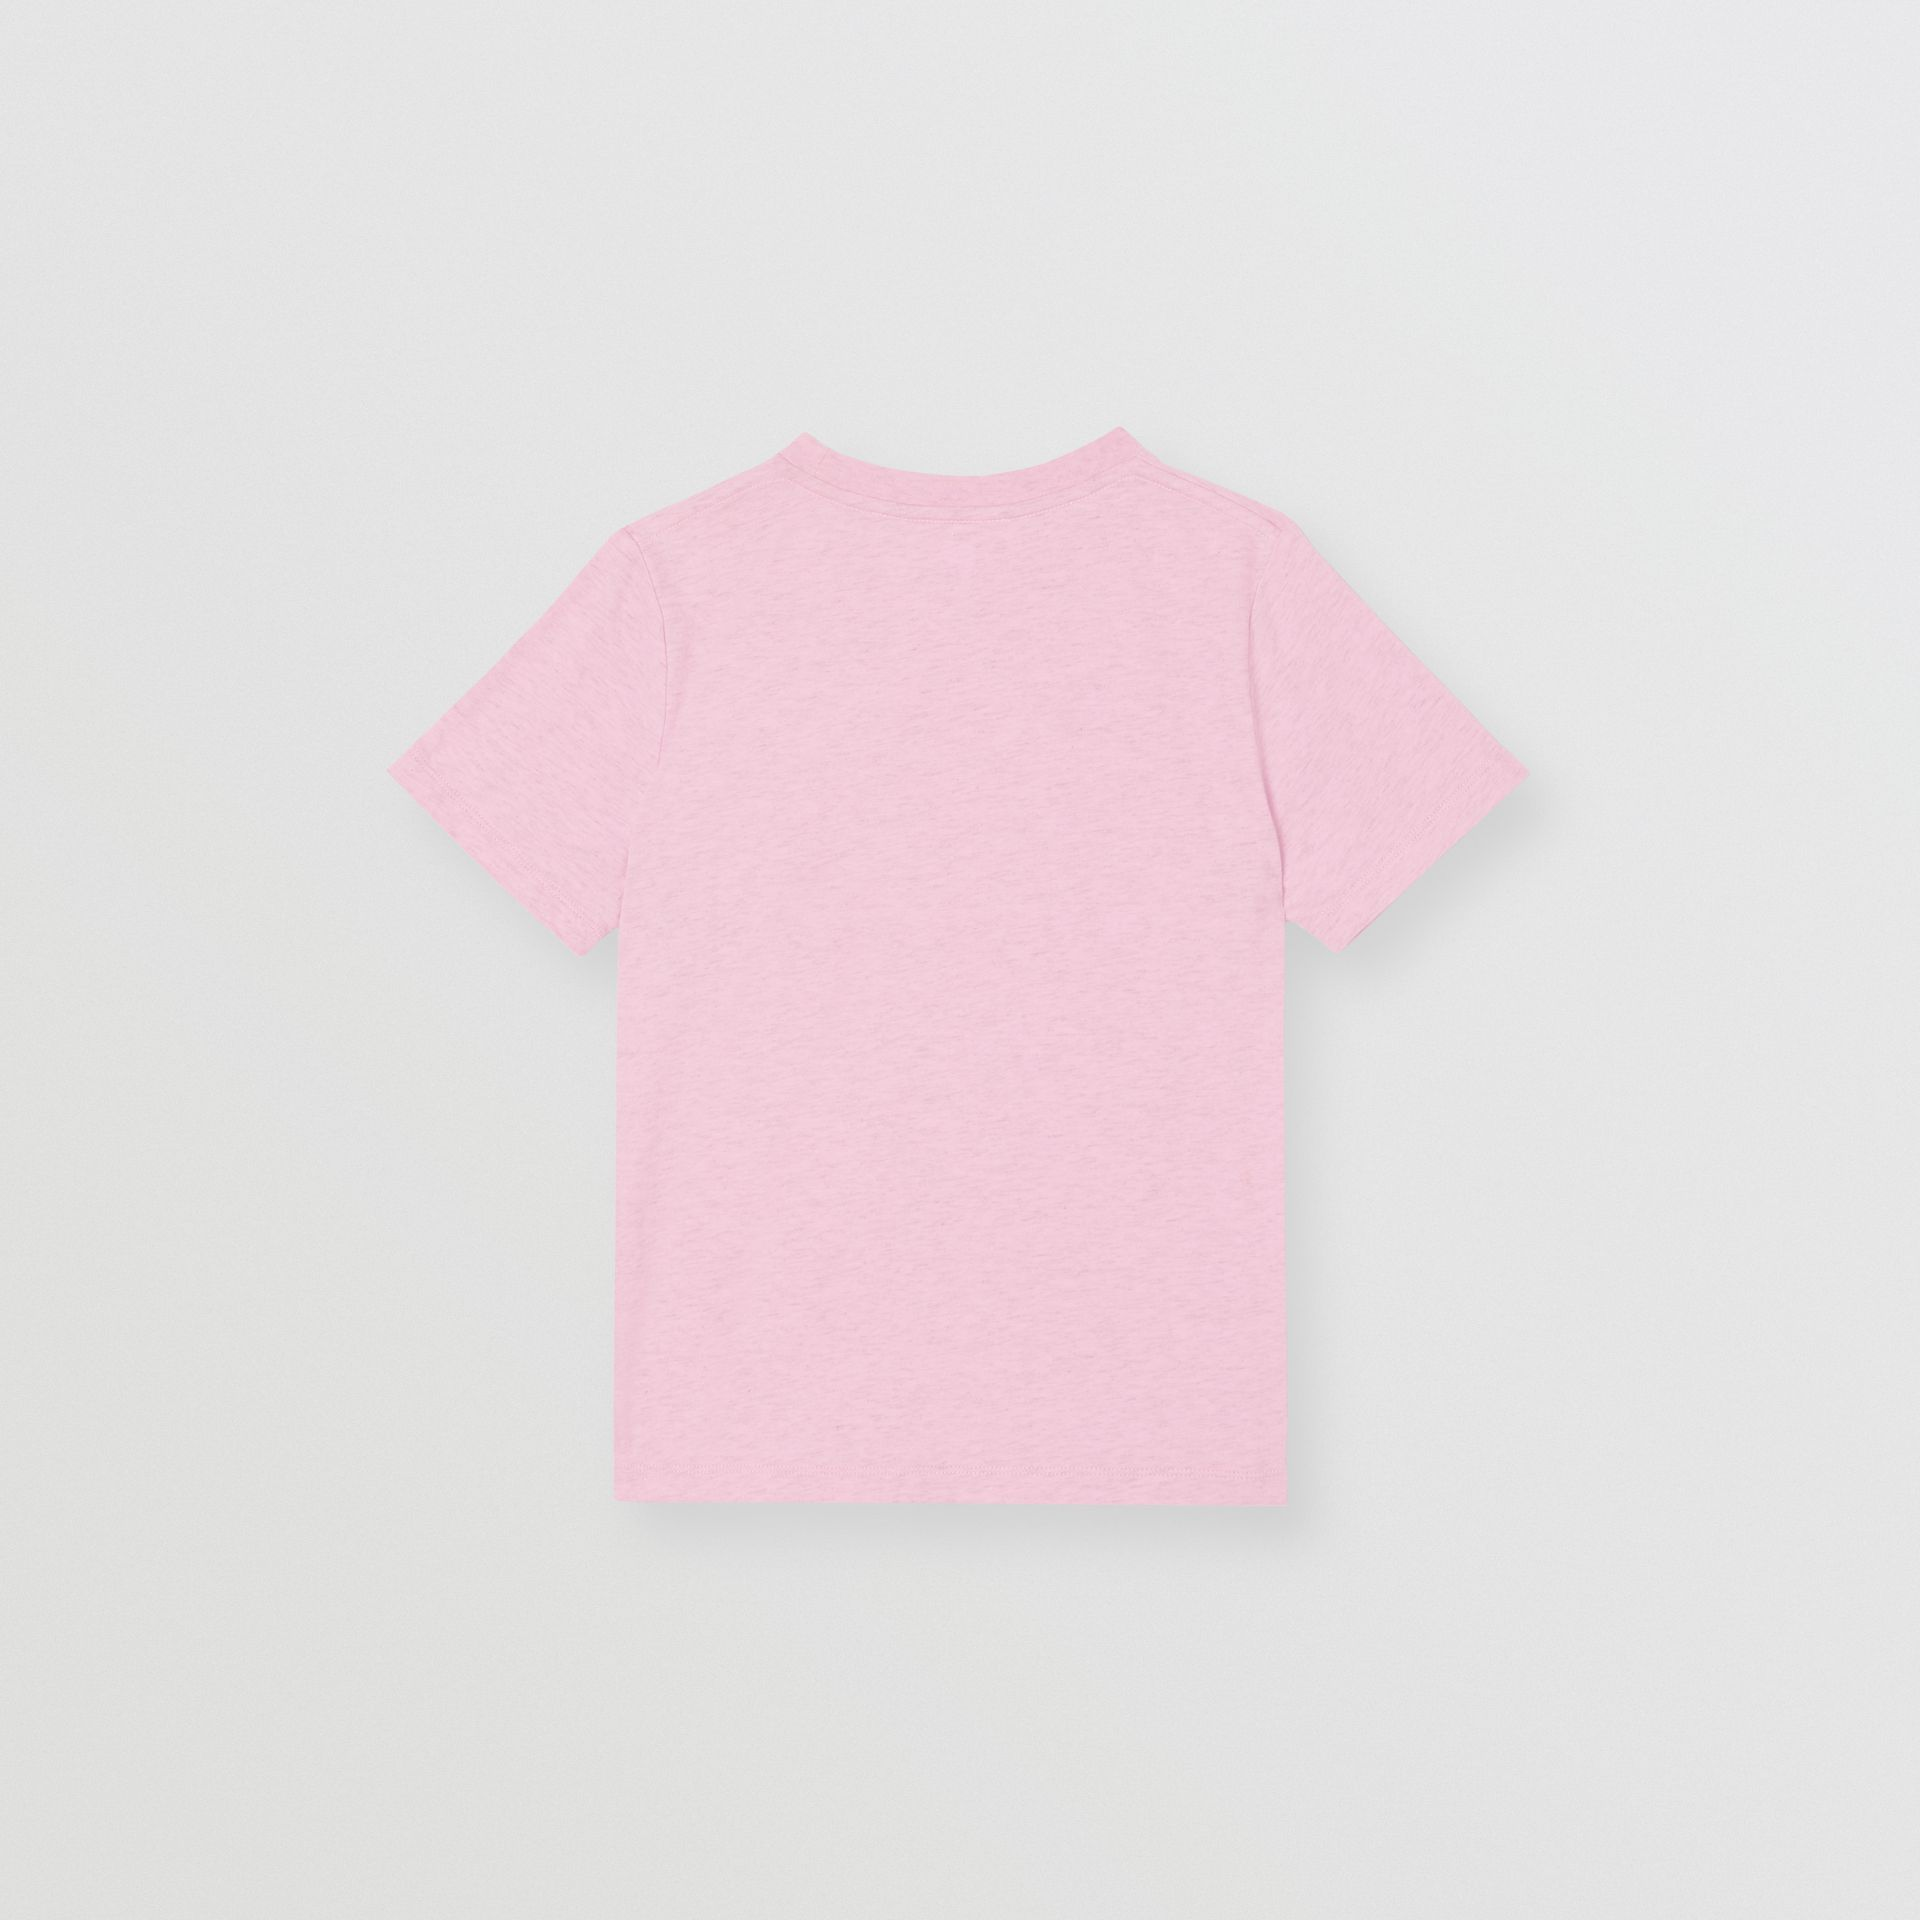 Logo Print Cotton T-shirt in Pale Neon Pink | Burberry United Kingdom - gallery image 3